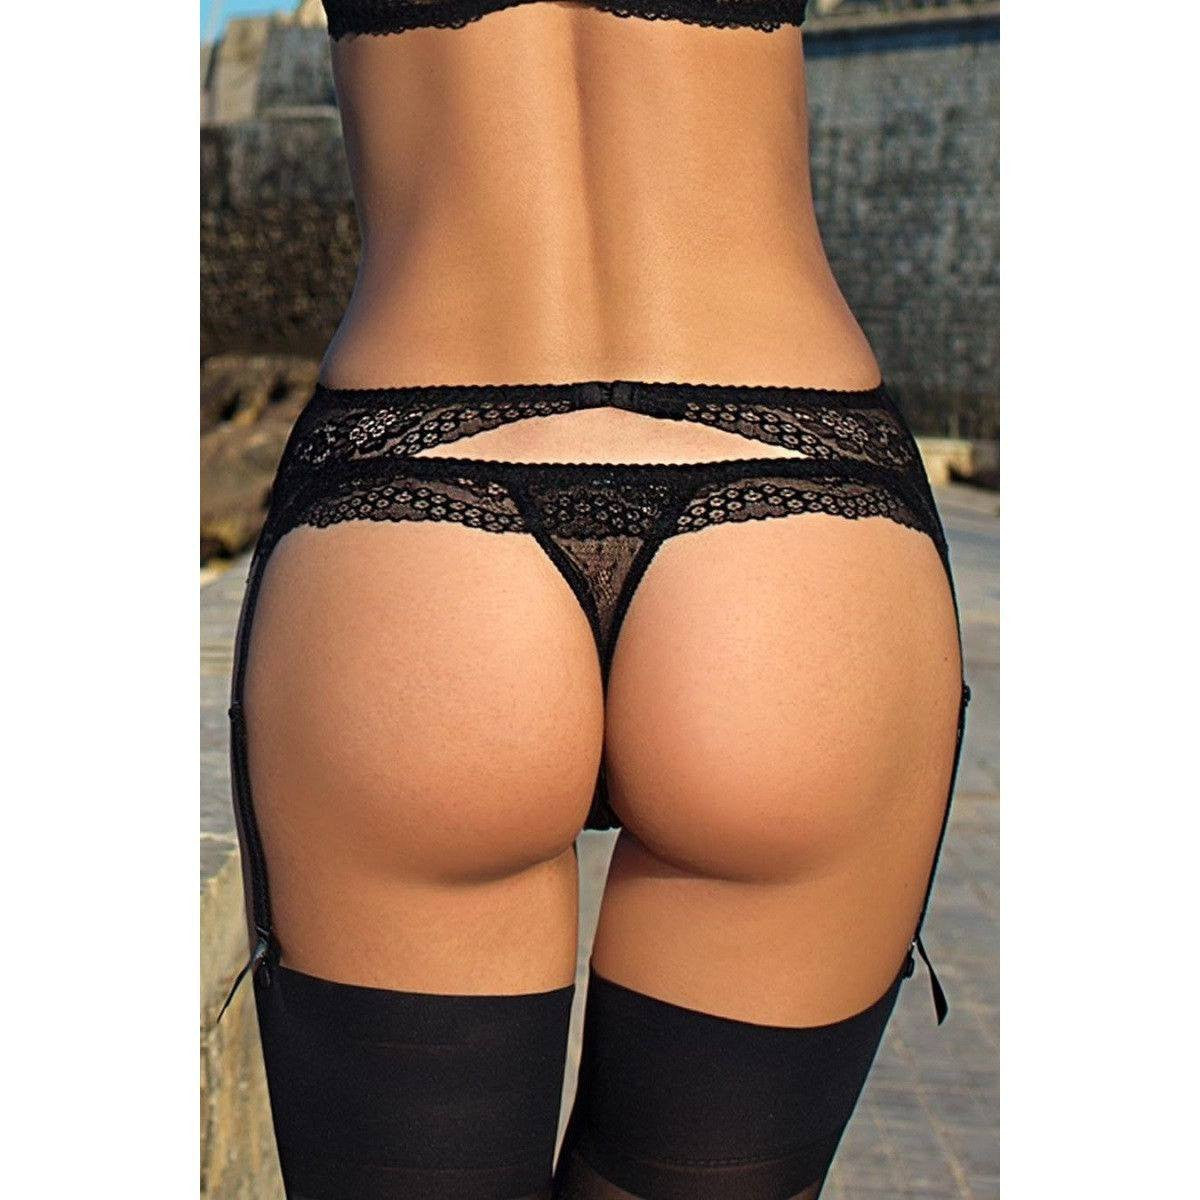 Black low-waist garter belt for <span class=money>€19.95 EUR</span> at Flirtywomen